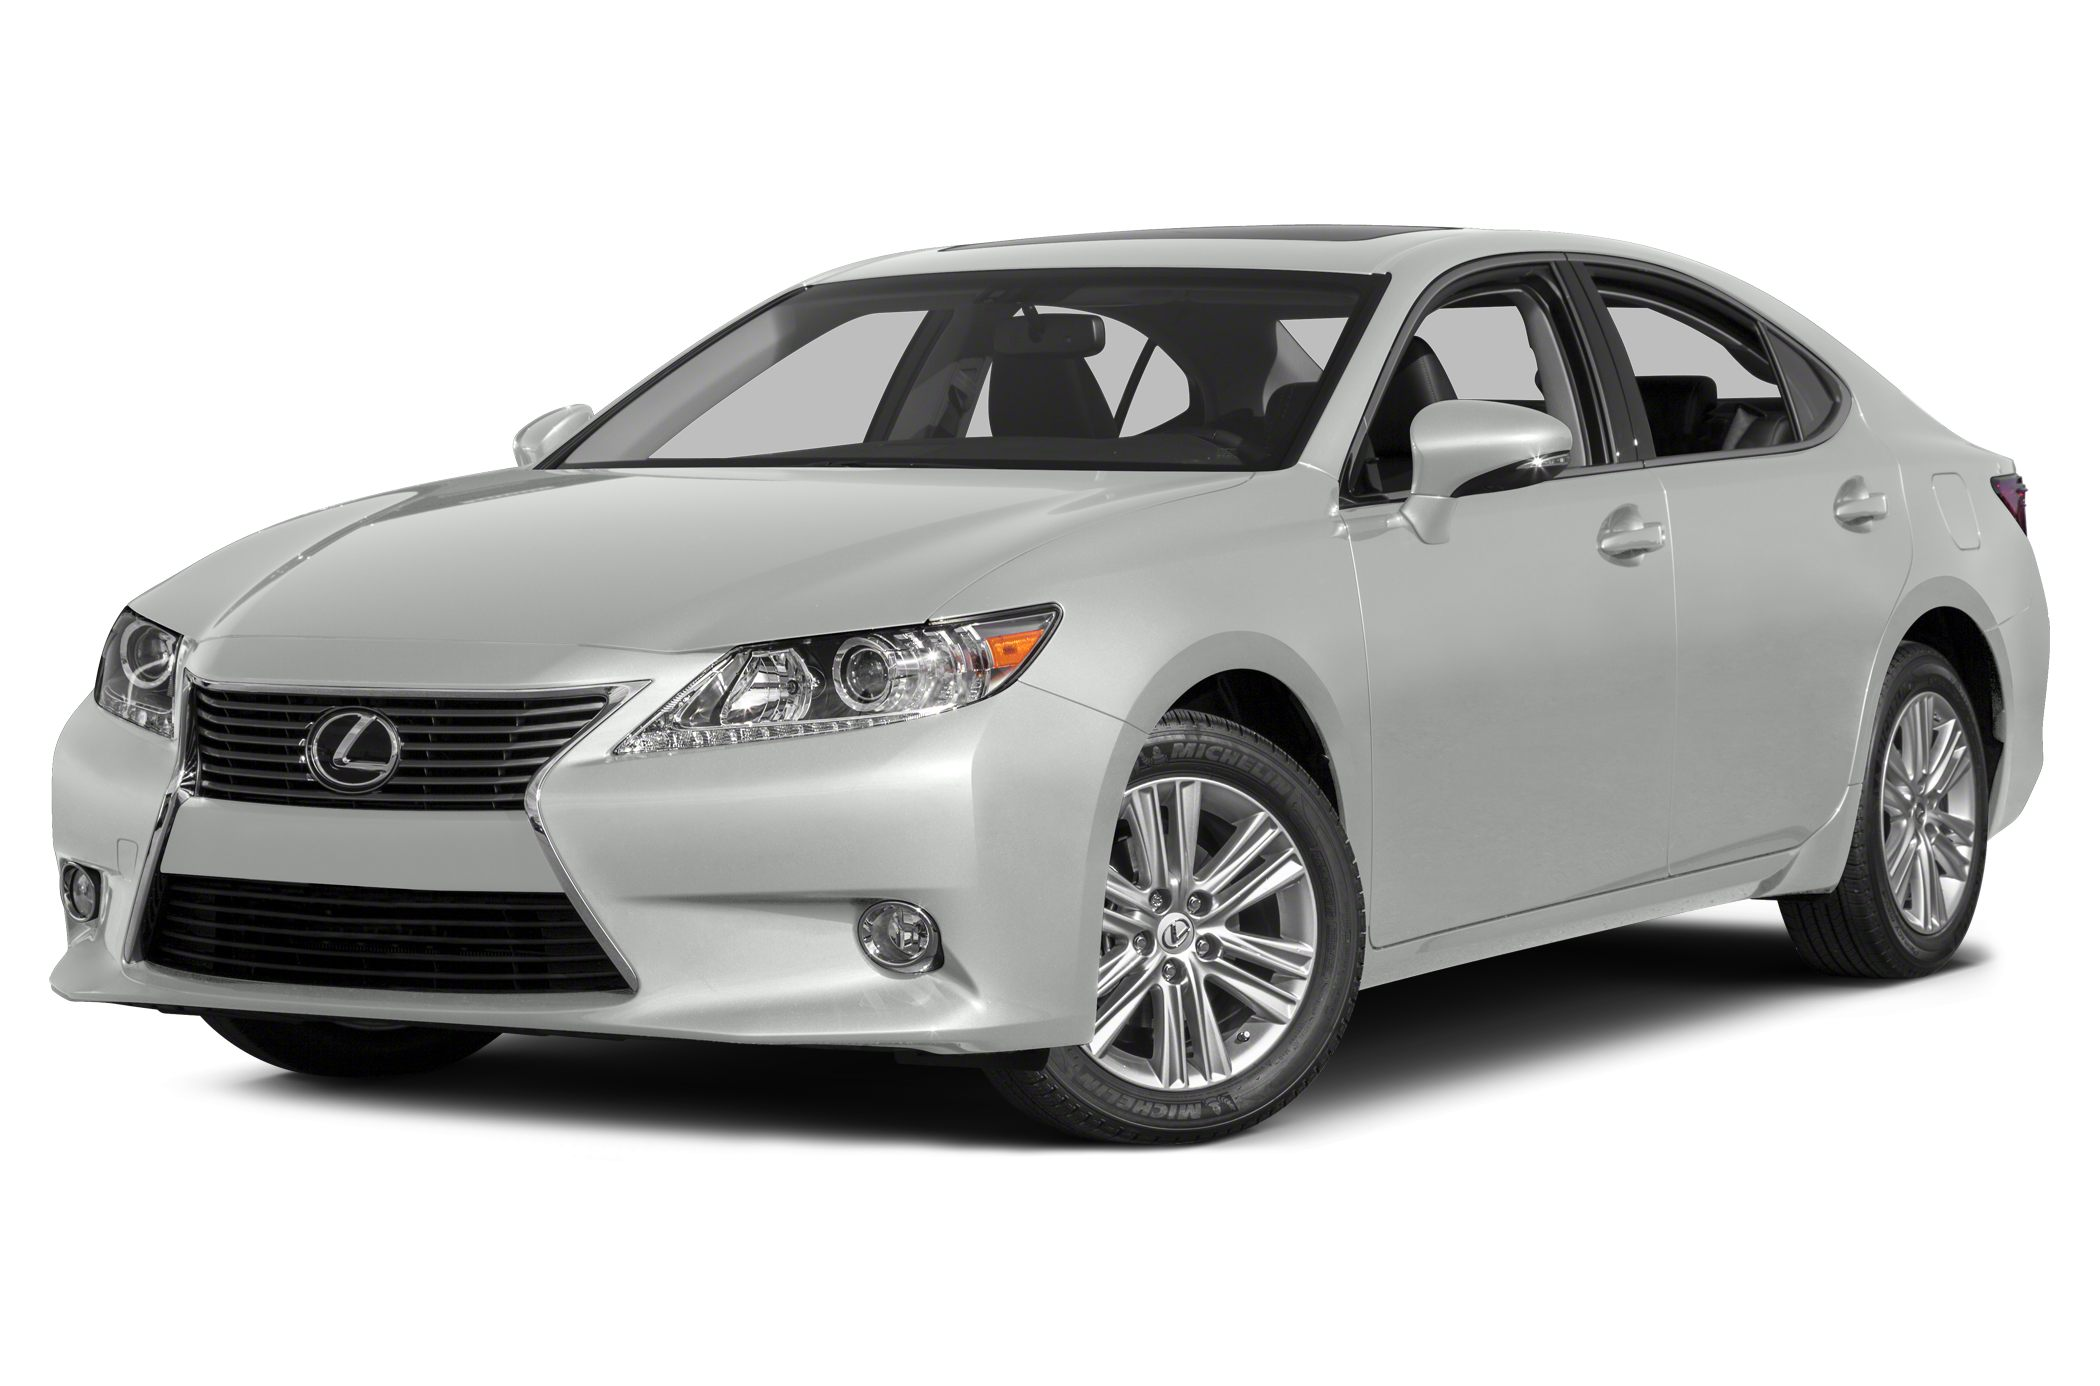 2013 Lexus ES 350 Base PREMIUM PLUS PKG 1 OWNER CARFAX CERTIFIED FULLY LOADEDBLIND SPOT